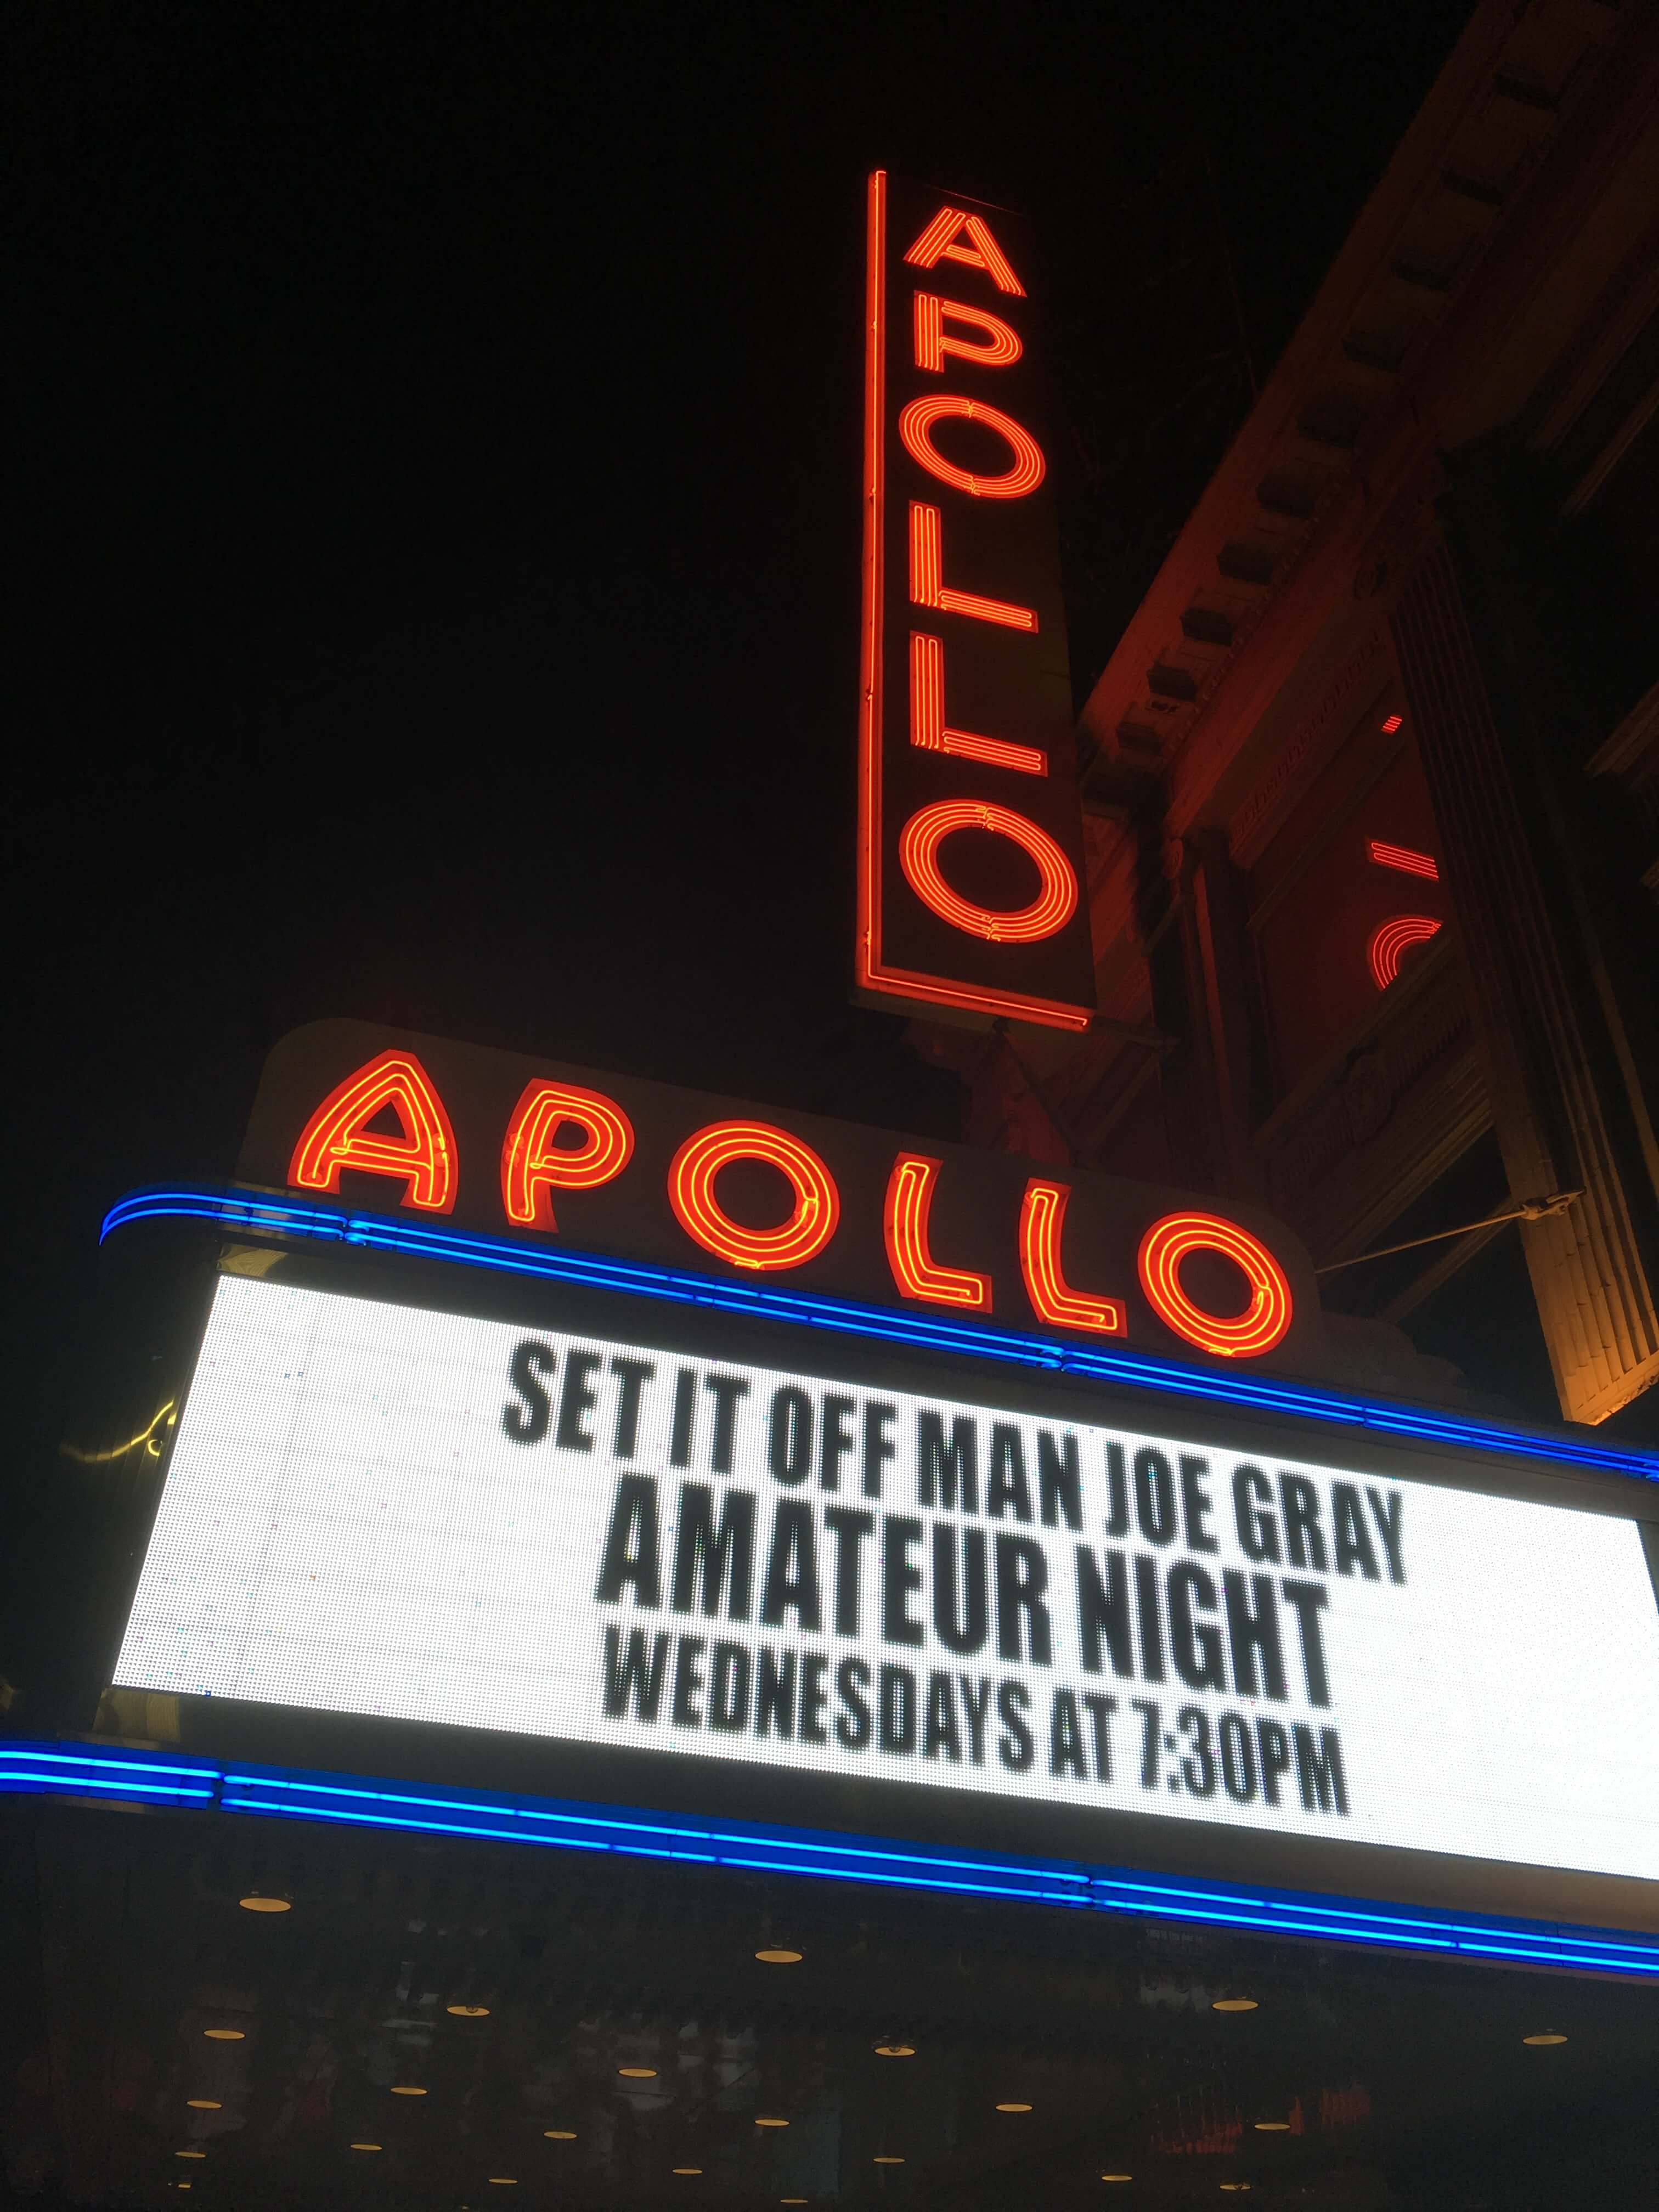 Things to do in Harlem: Apollo theatre, Harlem, NYC, New York City, Amature night at the Apollo